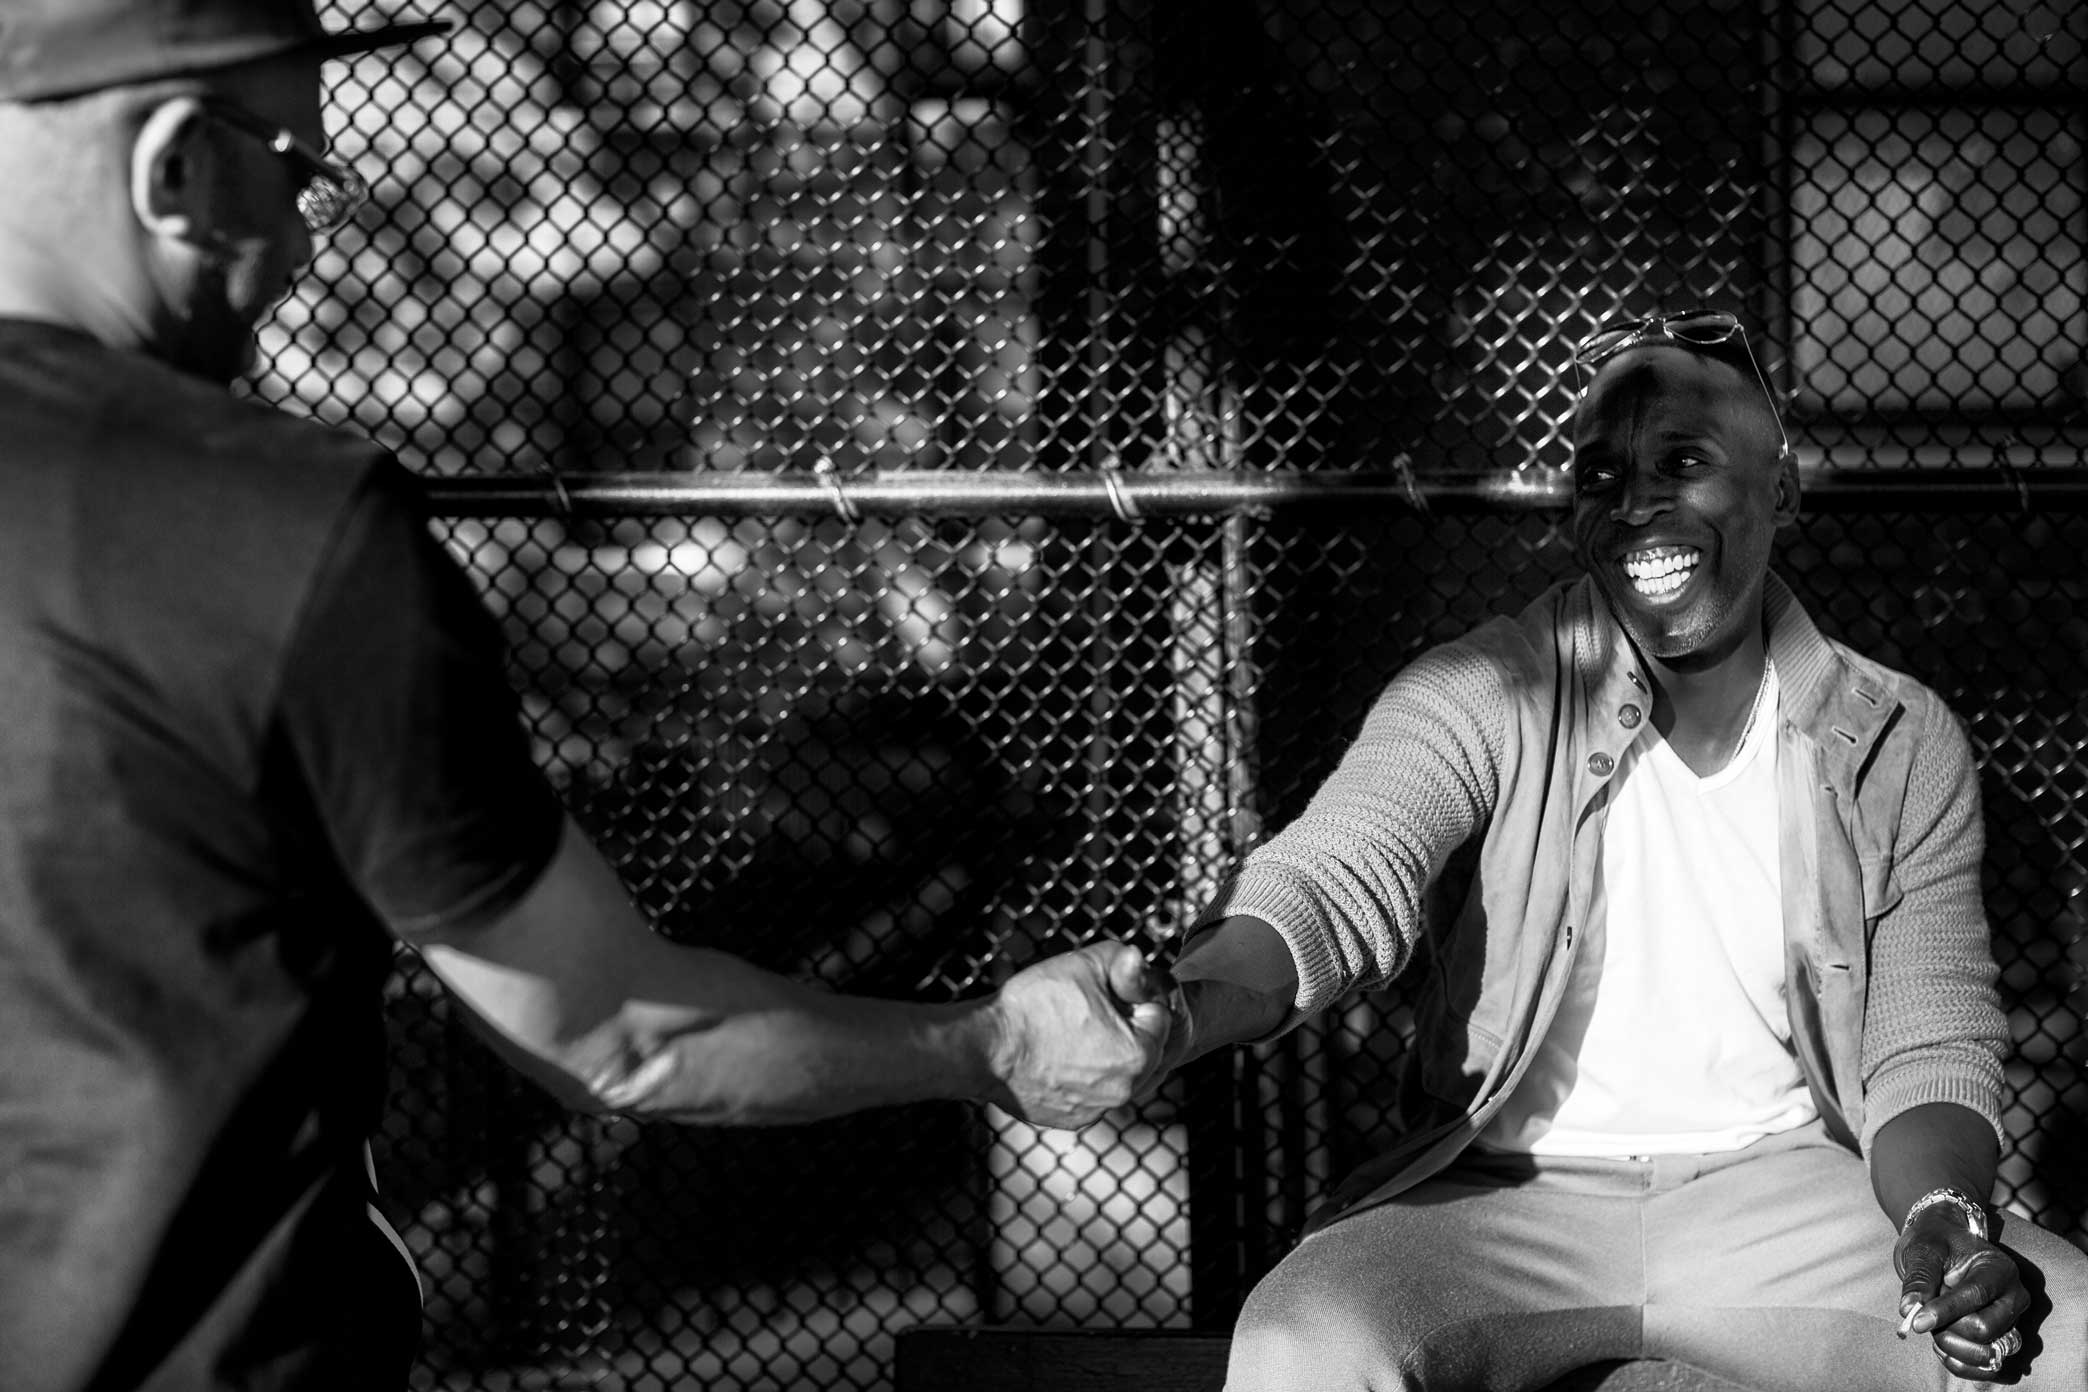 """Mr. Williams hanging out at the Norstrand Ave basketball court in Flatbush Brooklyn. """"It has been way too long since I was last there,"""" said Williams. Williams grew up in Vanderveer Projects now named Flatbush Gardens in Flatbush Brooklyn.  Weed"""